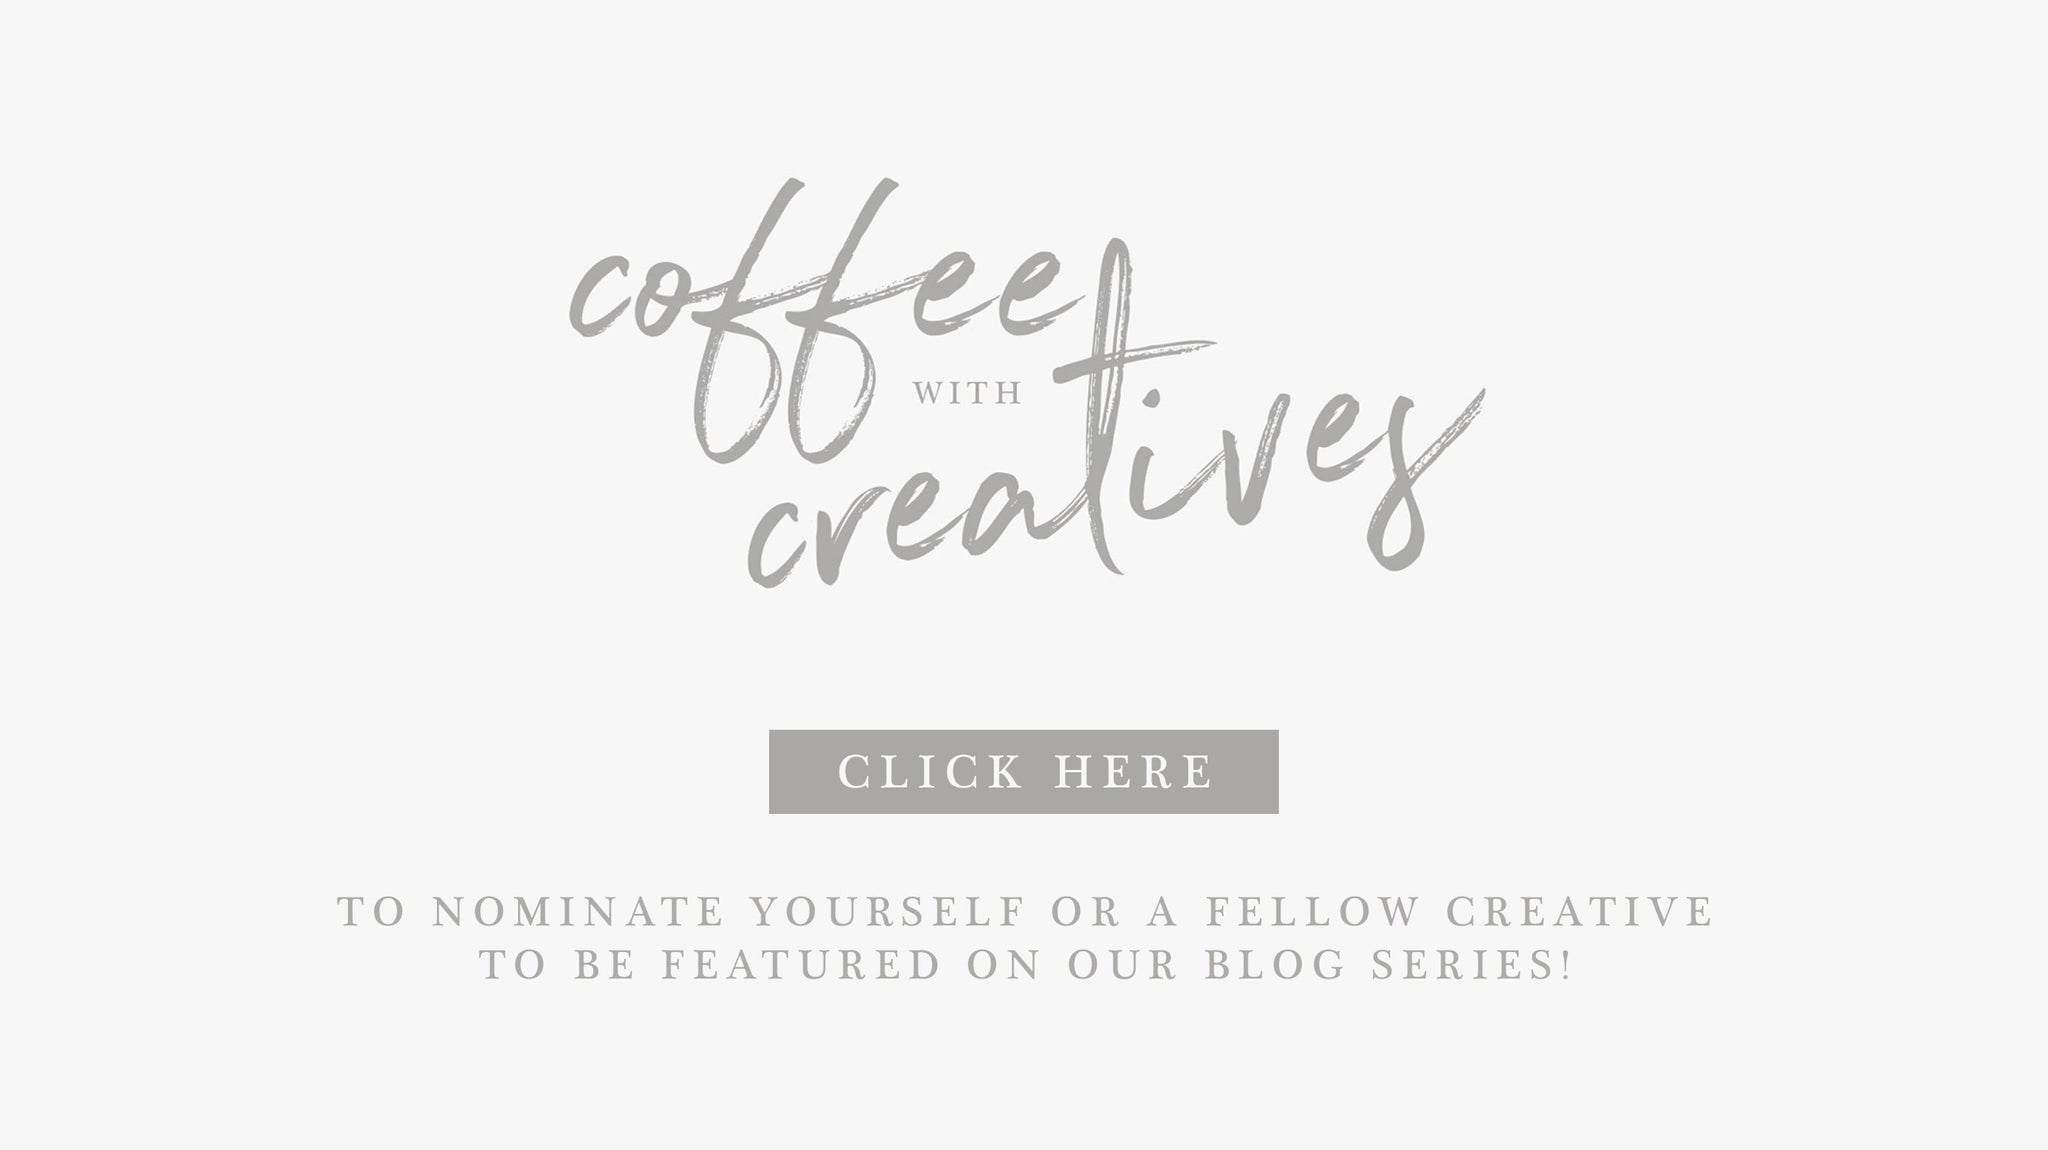 Nominate yourself or someone you think would be an inspiration to our community of photographers and creatives and be a guest on our blog series!